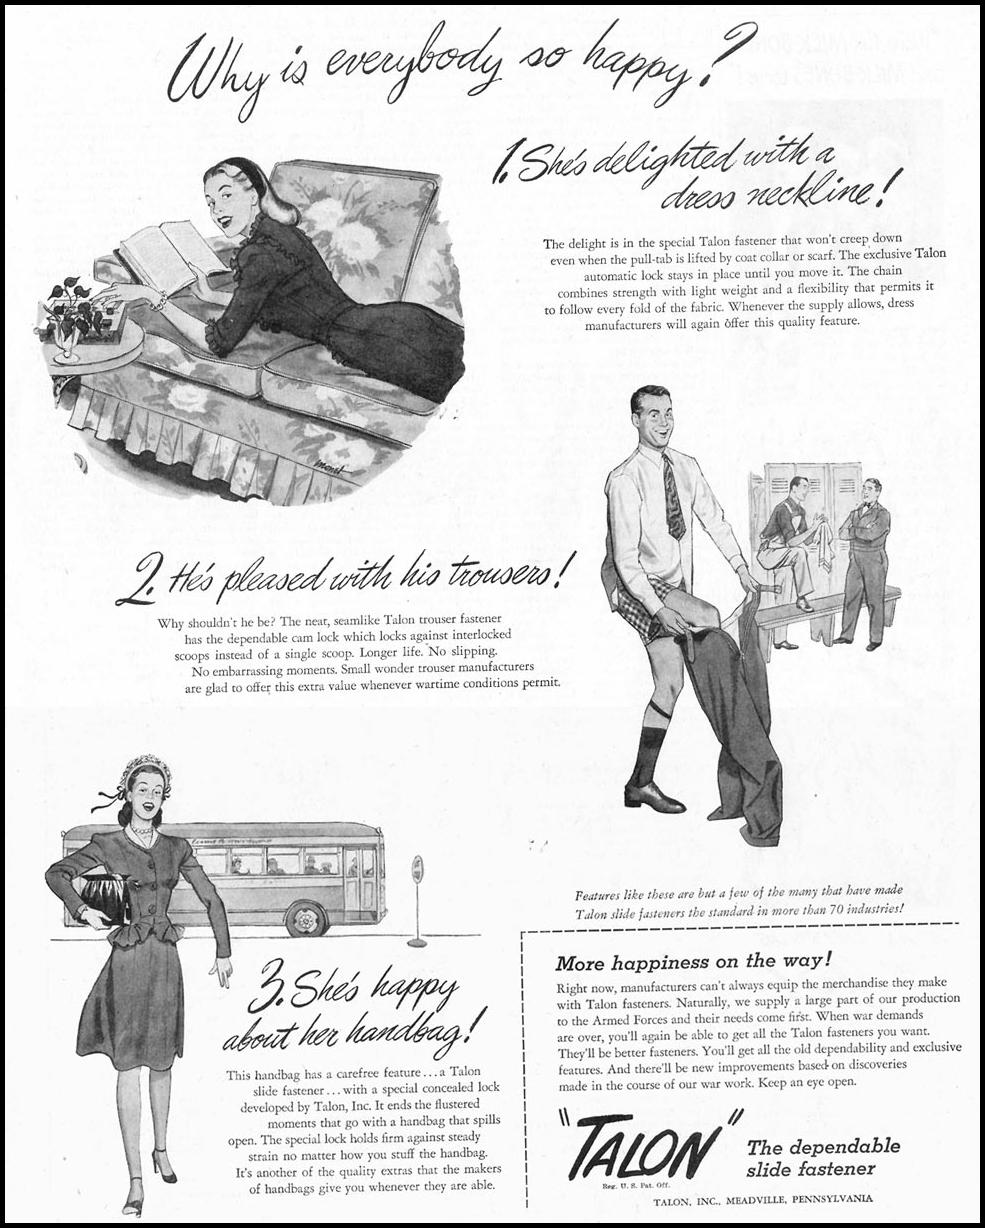 TALON SLIDE FASTENERS SATURDAY EVENING POST 05/19/1945 p. 67